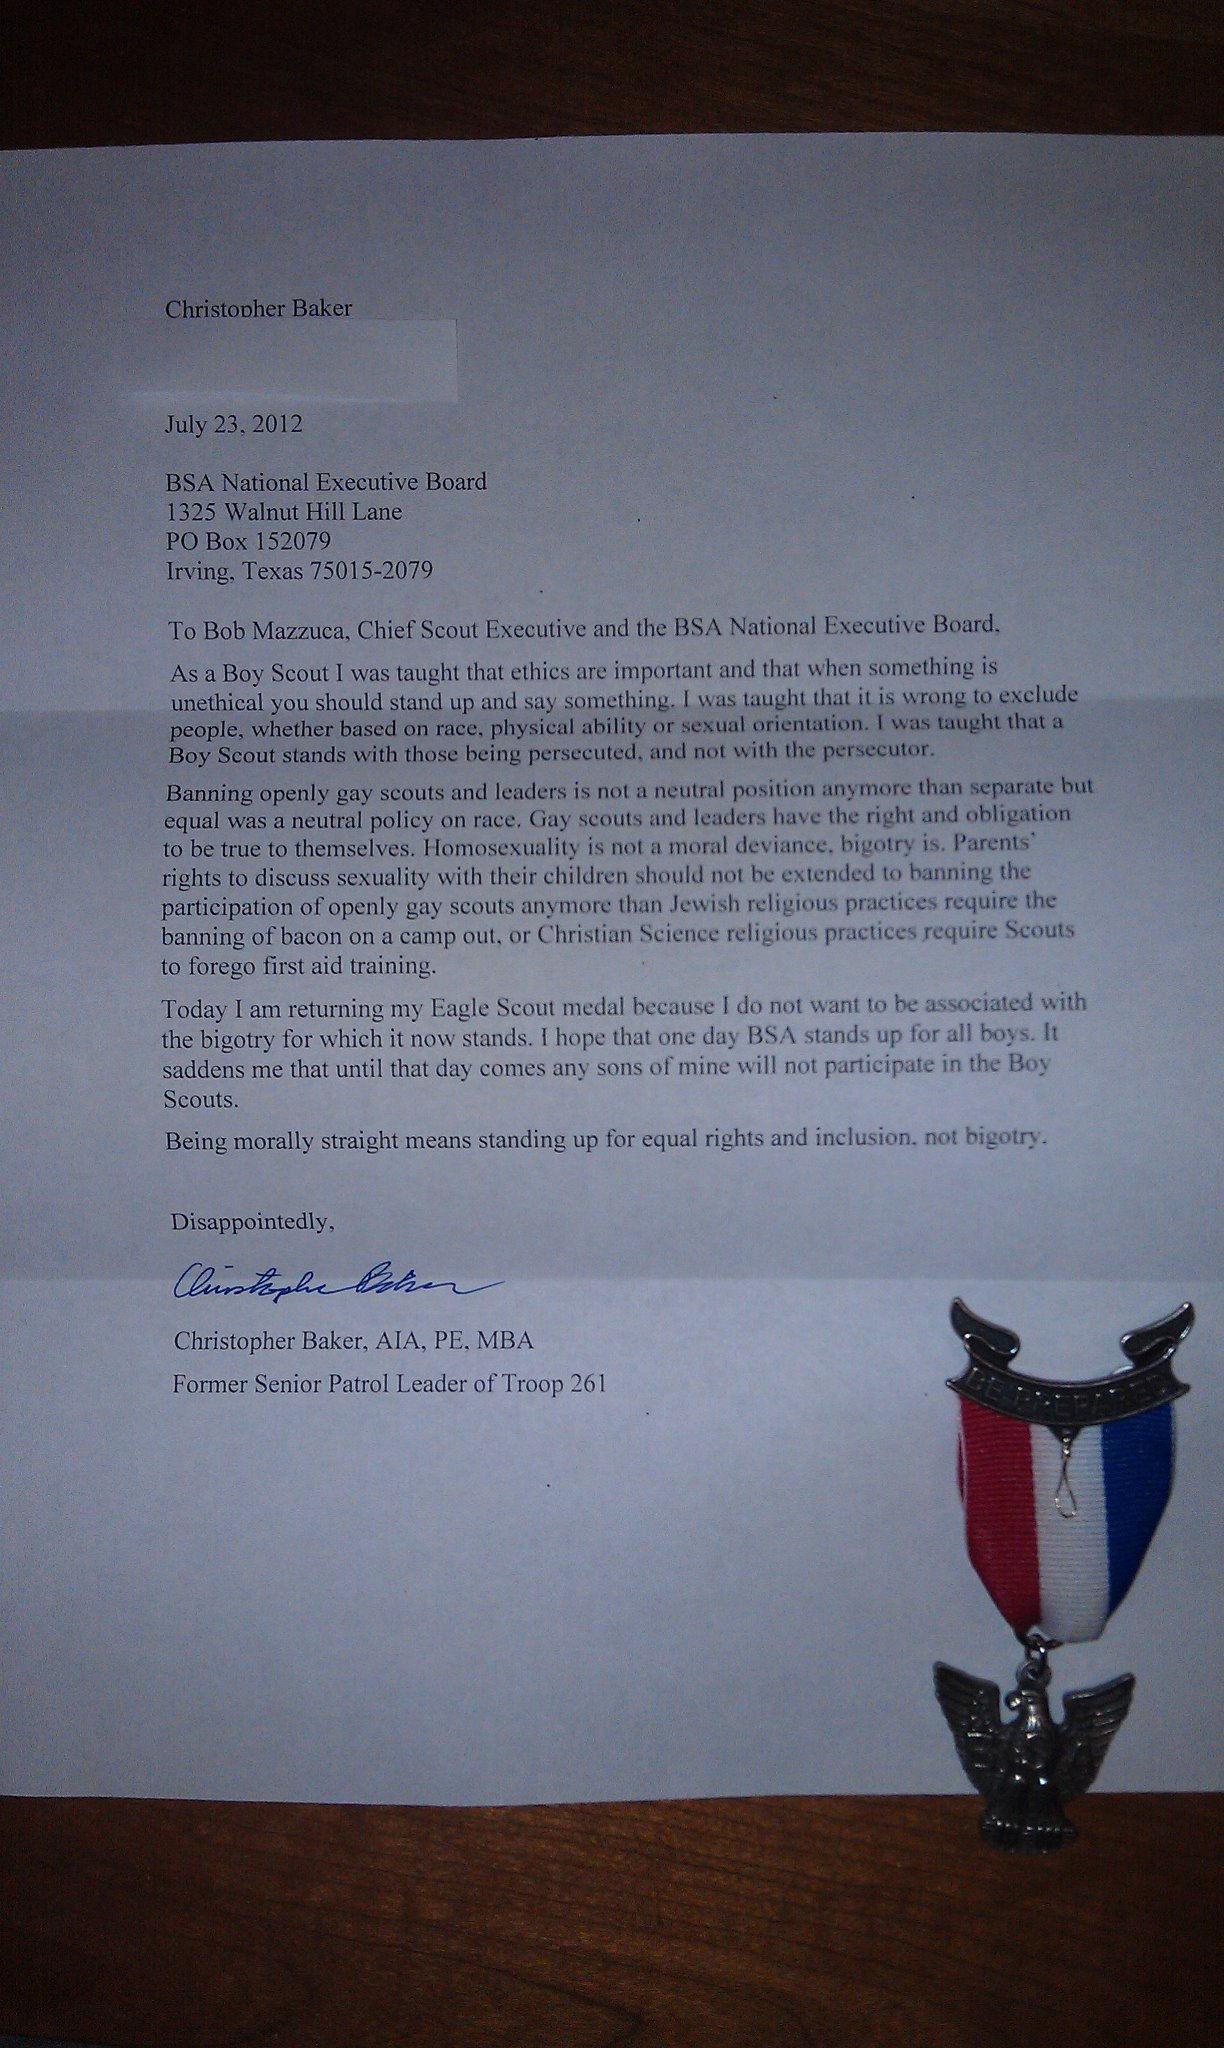 Eagle Scouts stand up to the Boy Scouts of America: *UPDATED